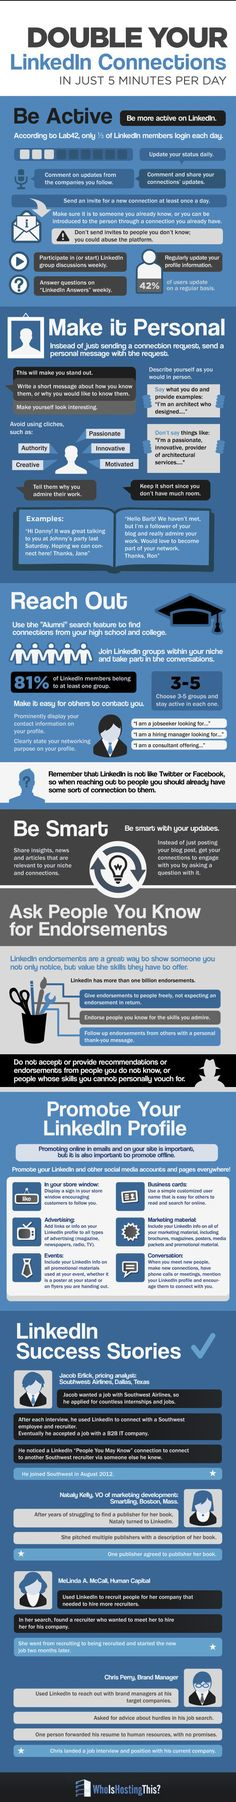 5 Strategies to Double Your LinkedIn Connections Organically [infographic] | WeRSM | We Are Social Media